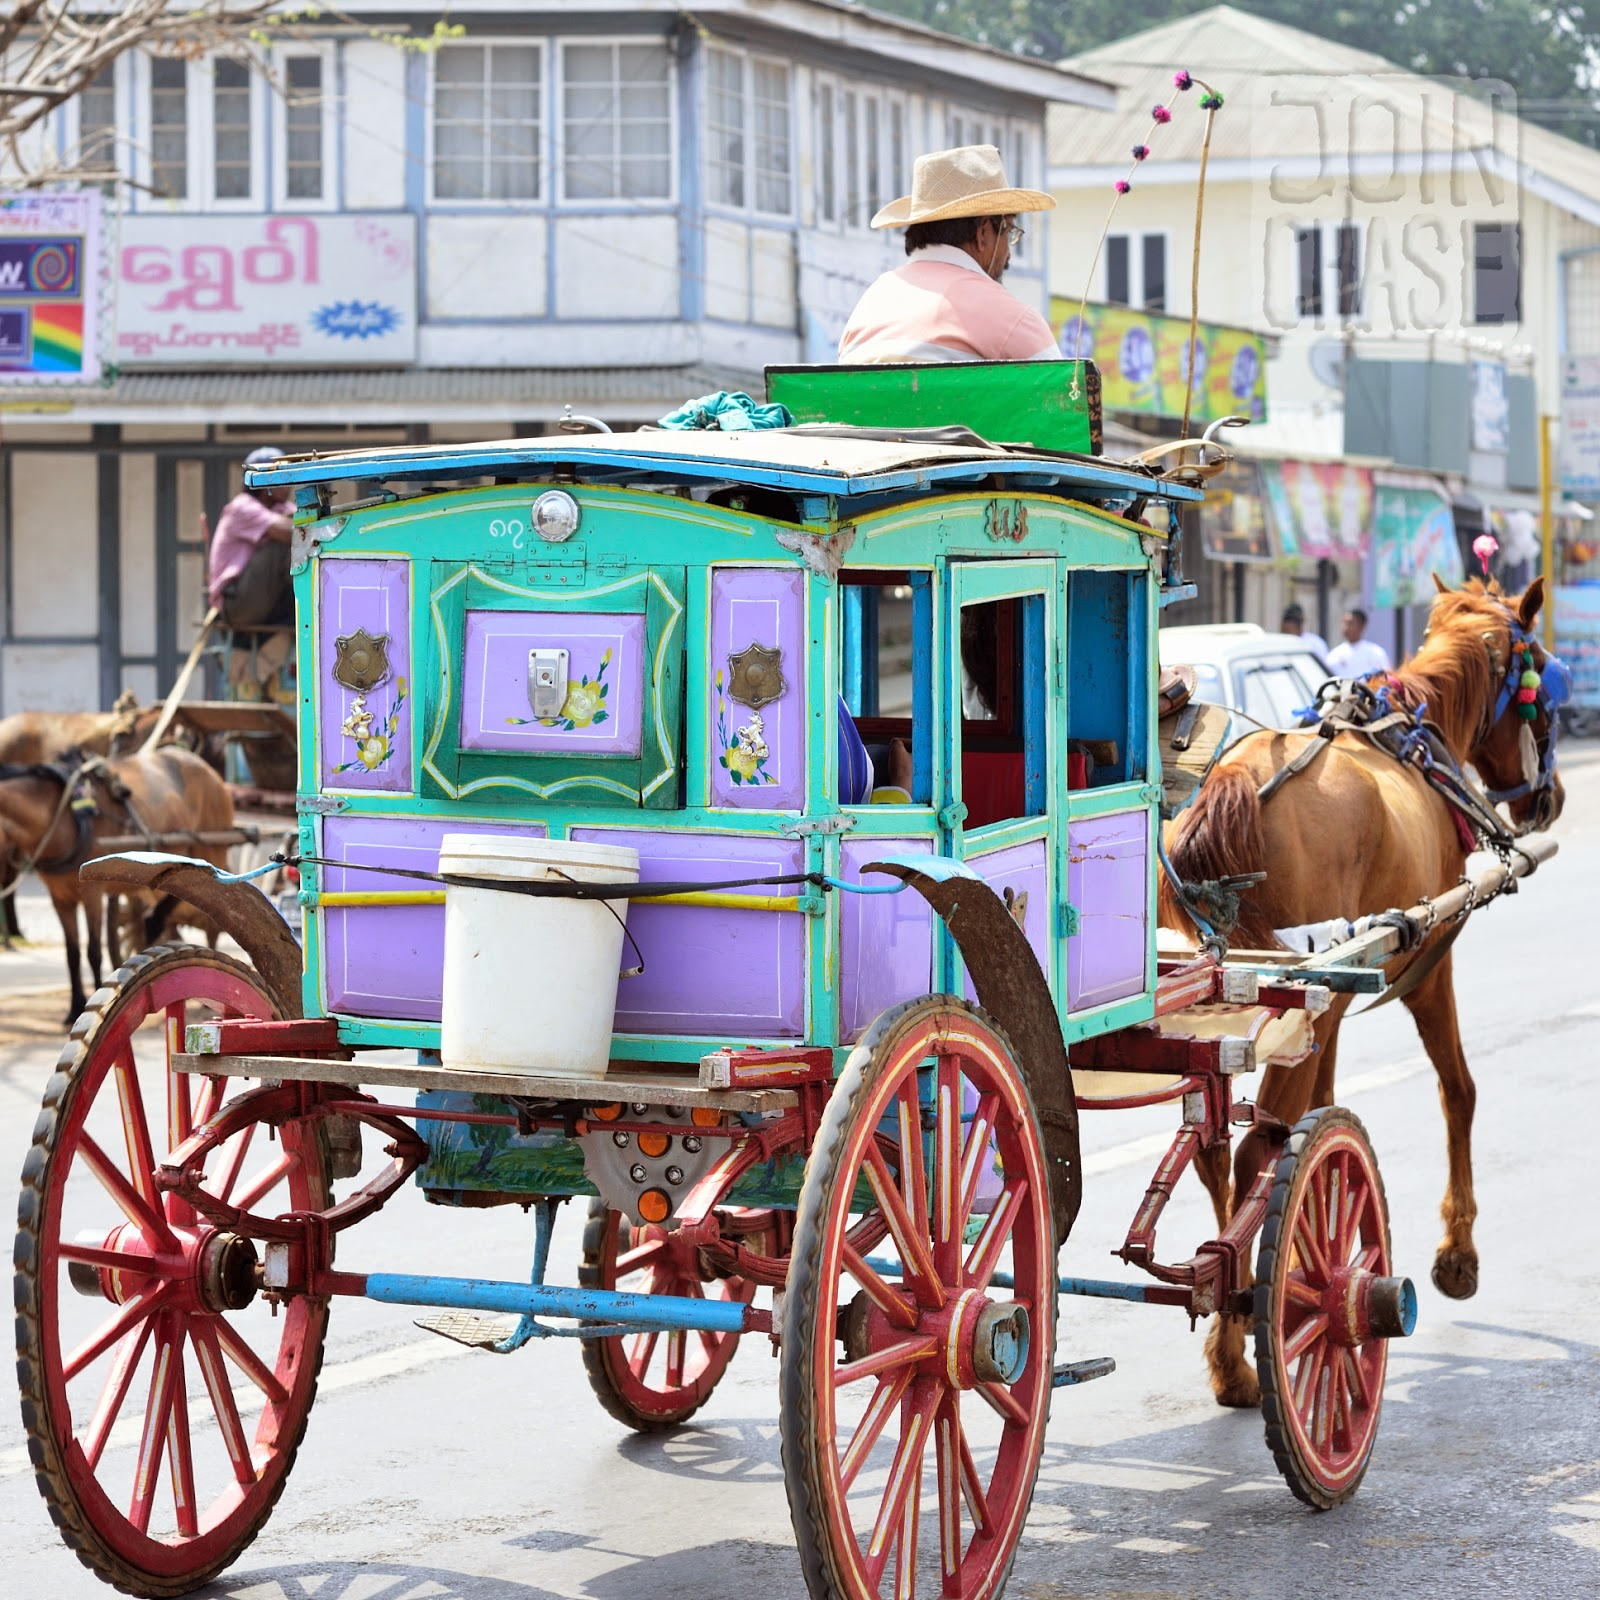 A horse-drawn carriage in Pyin Oo Lwin, Myanmar.